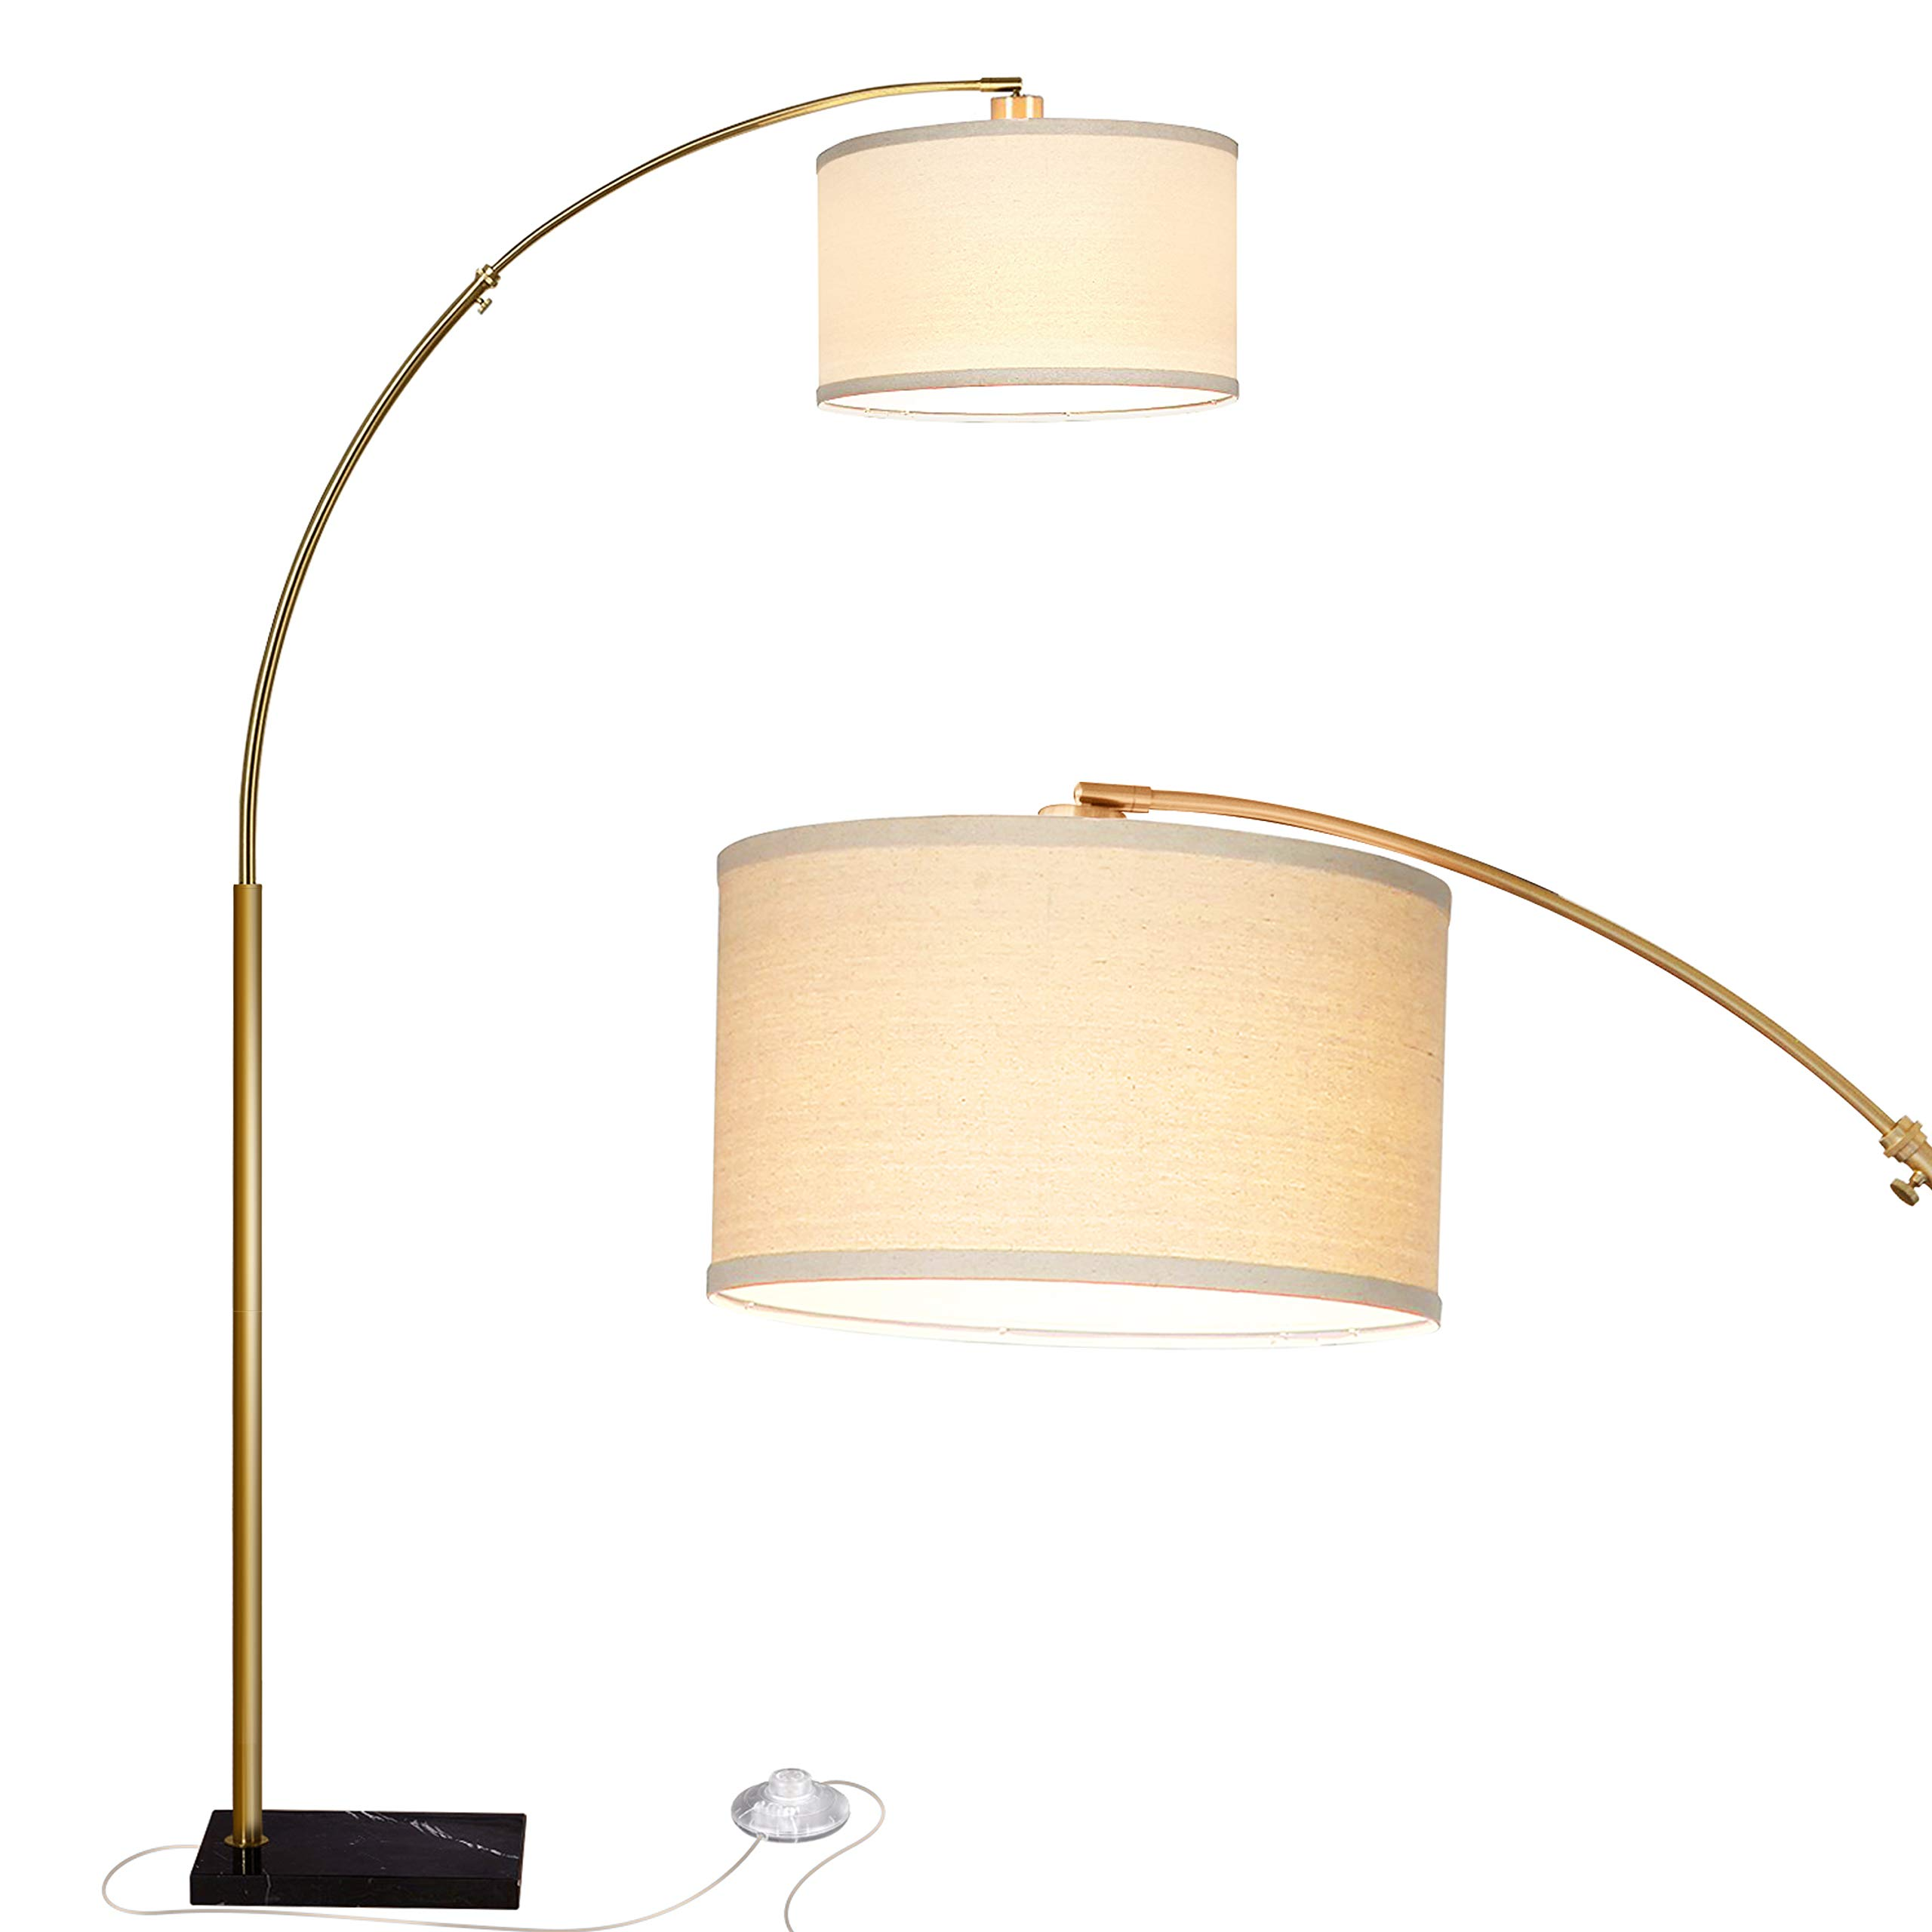 Brightech Logan LED Arc Floor Lamp with Marble Base - Living Room Lighting for Behind The Couch - Modern, Tall Standing Hanging Light - Brass/Gold by Brightech